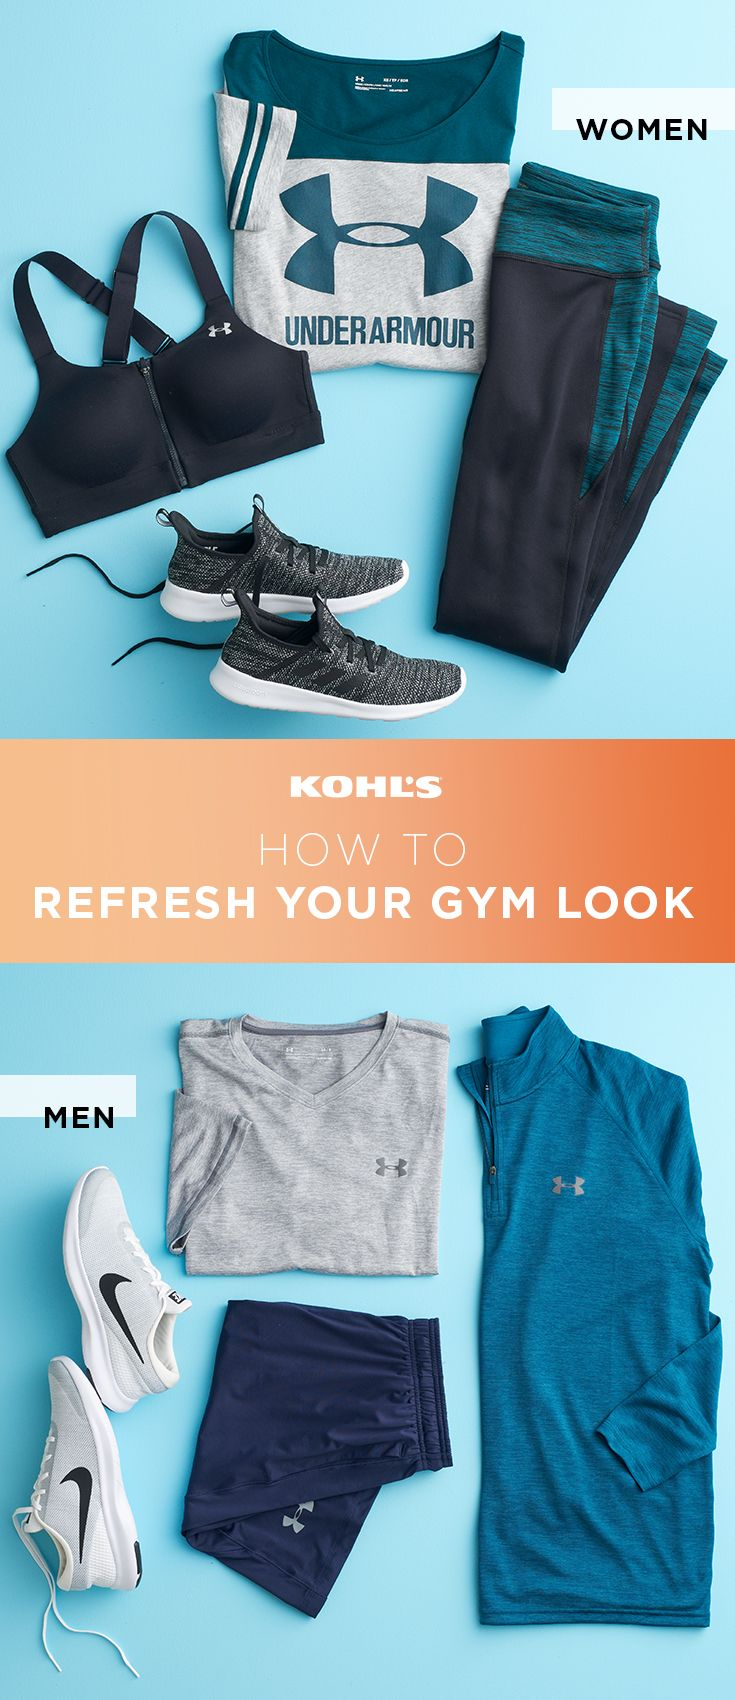 Adding a new outfit into your gym gear rotation is all it takes to keep your workout look fresh. Think solids in darks and neutrals that you can mix and match with your tried-and-true favorites. For women, get a new sports bra, a sweatshirt, running tights and sneakers. For guys, go for new running shoes, a tee, shorts and a pullover. Reach your fitness goals with Under Armour, adidas and Nike at Kohl's. #fitnessfashion #running